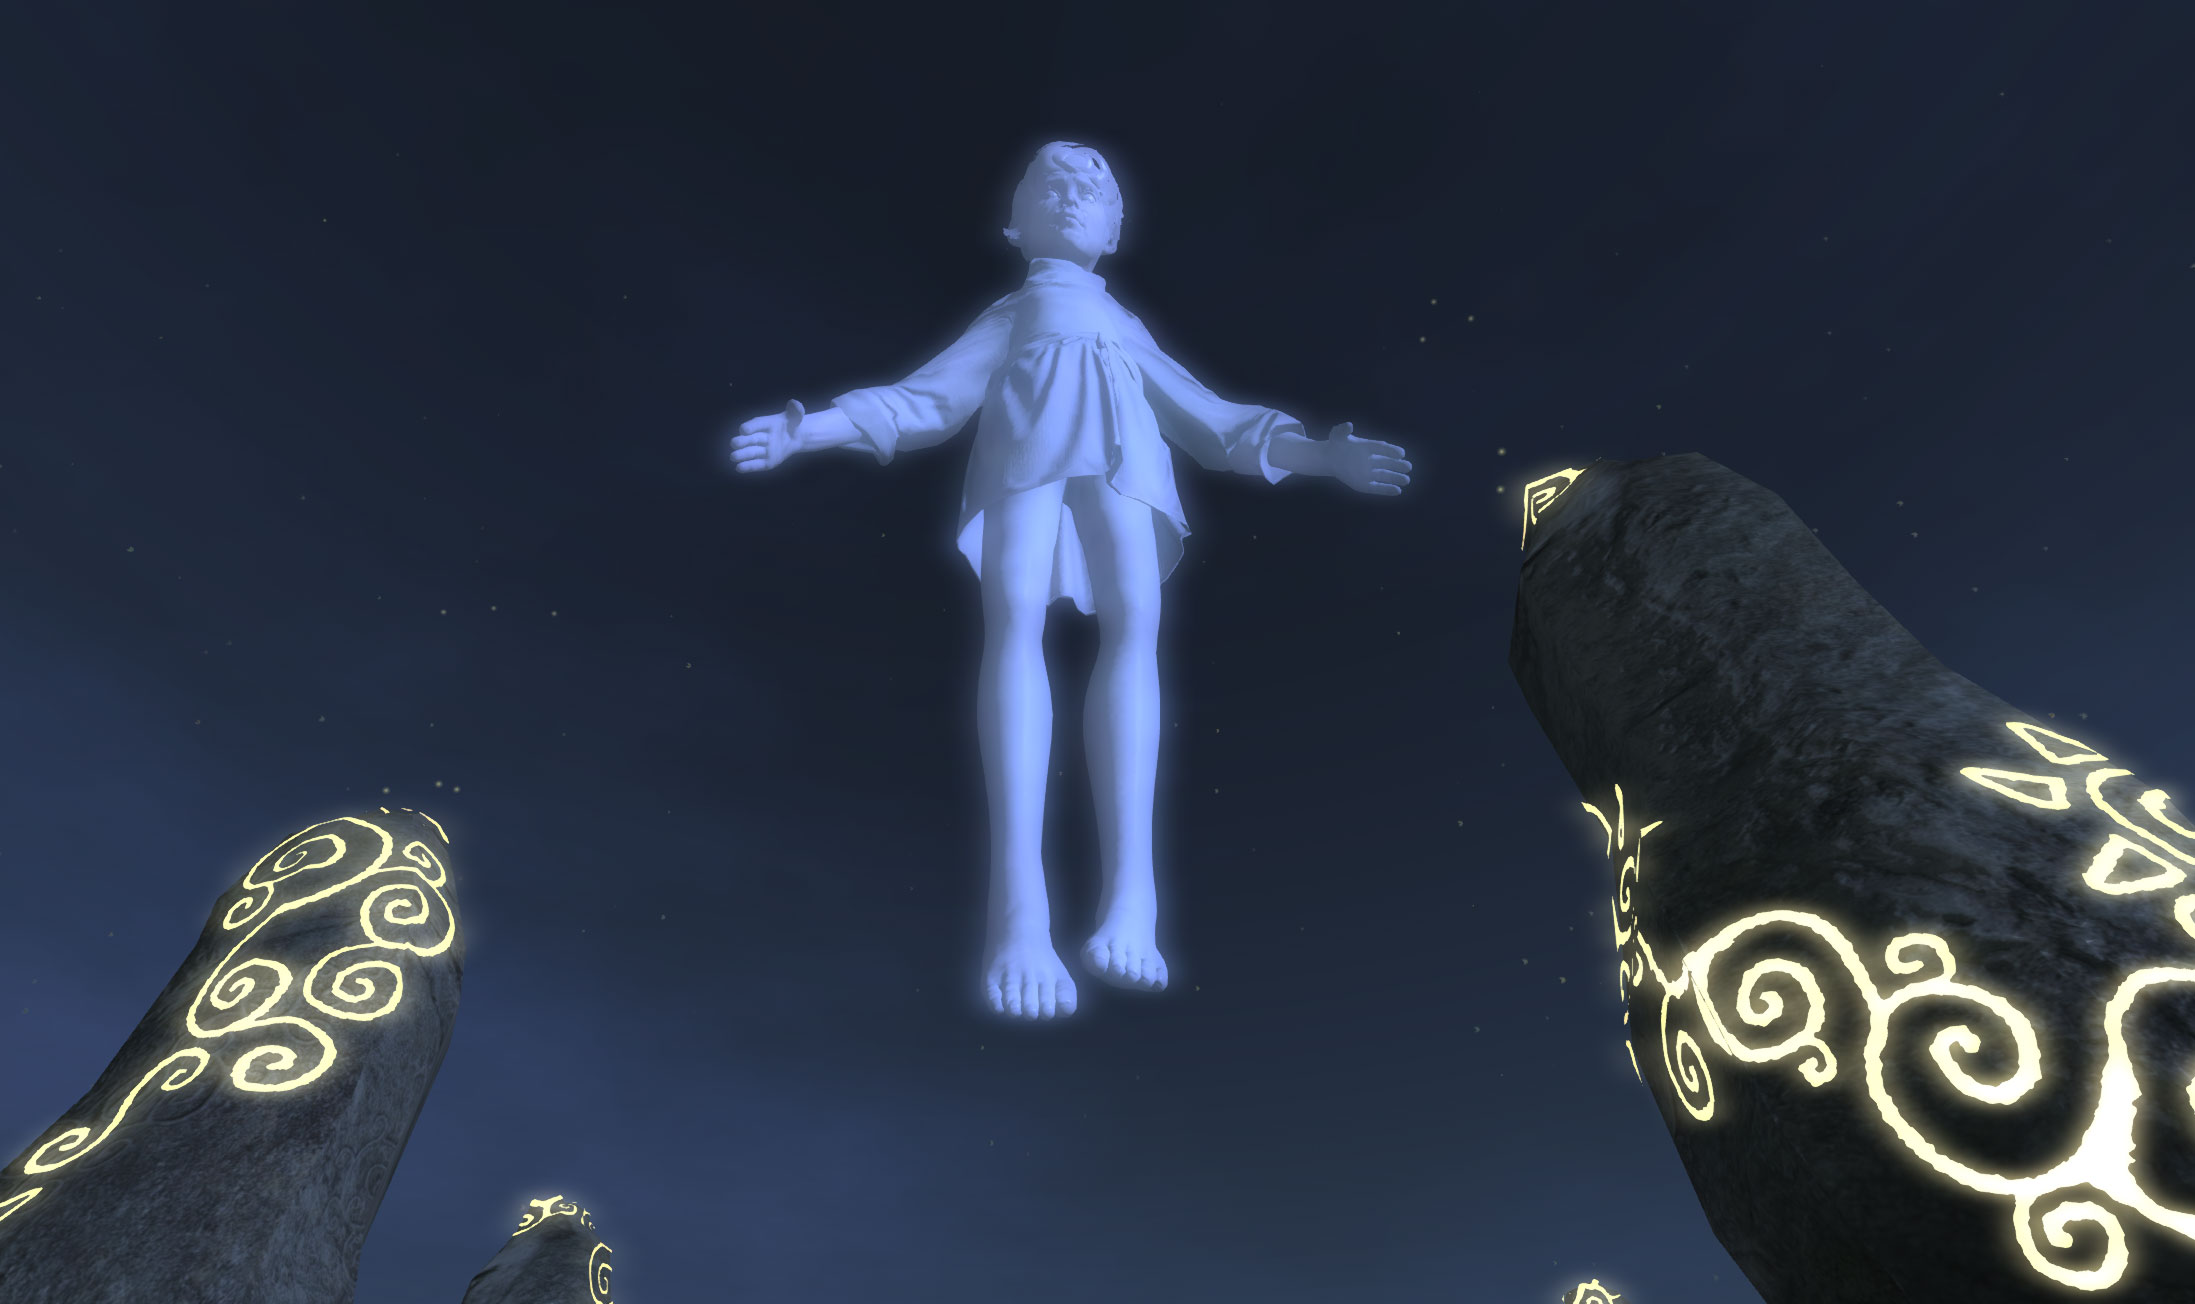 A Giant apparition of the Grey Prince appears high above the gathered crowd